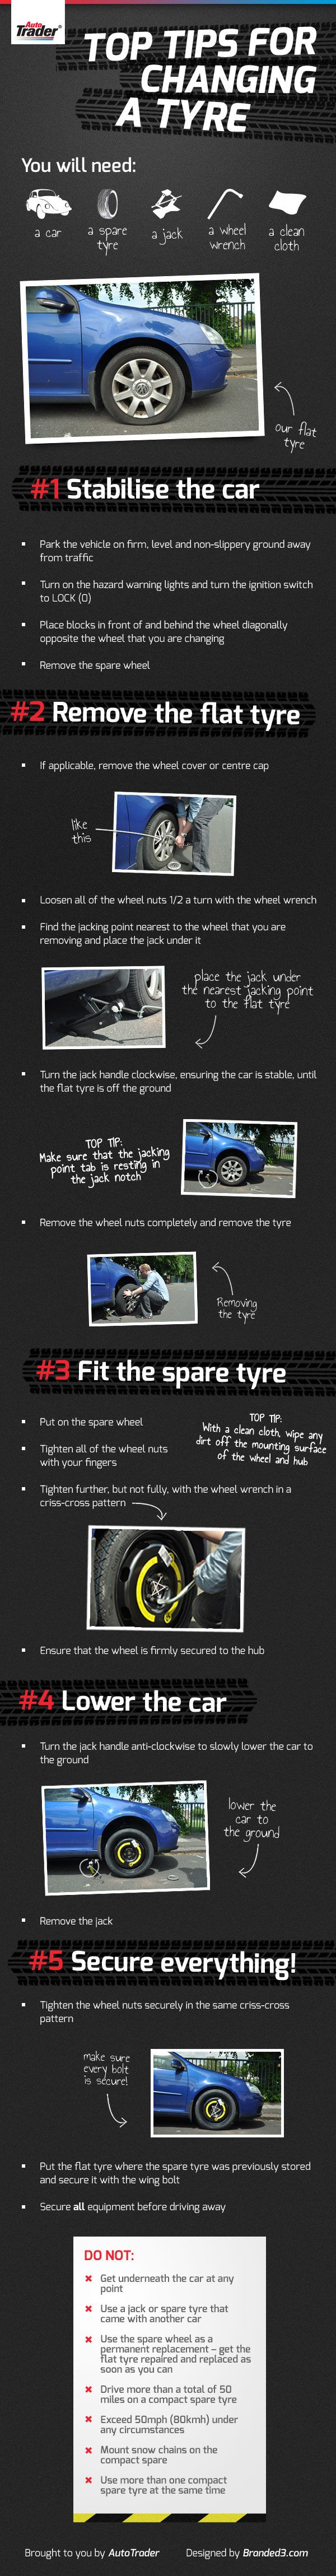 Auto Trader Top Tips For Changing A Tyre